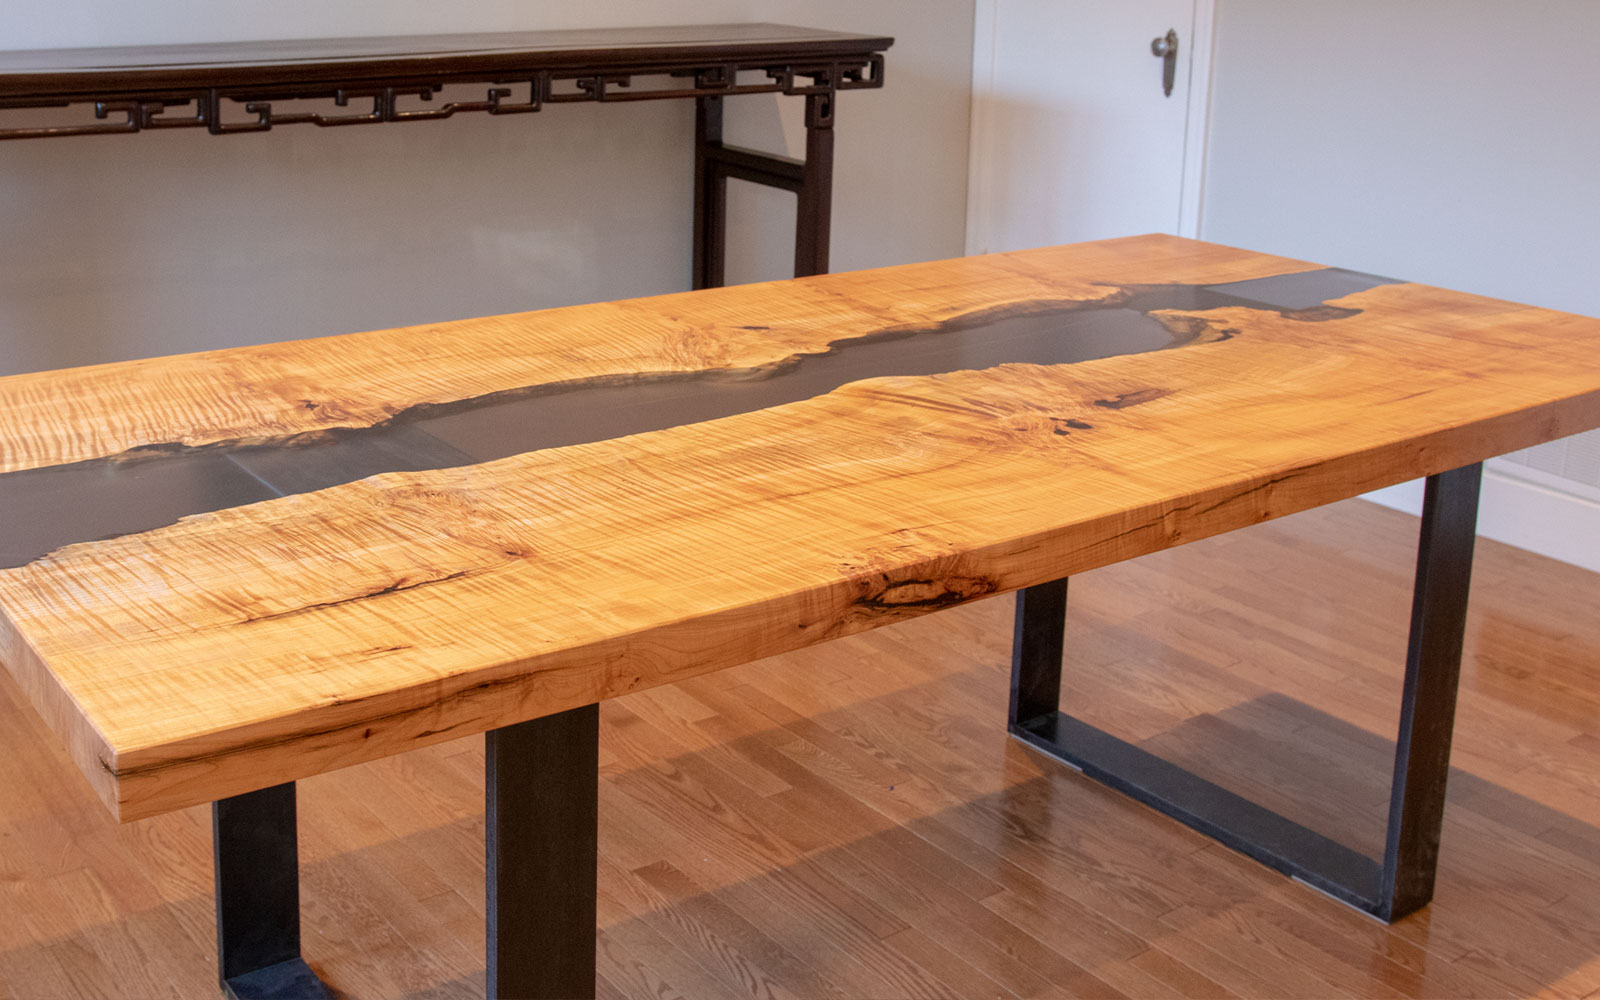 Quilted Maple Dining Table With Tinted Black Resin River | Calgary, AB |  84u201dLx40u201dWx30u201dH | $10,000 CAD